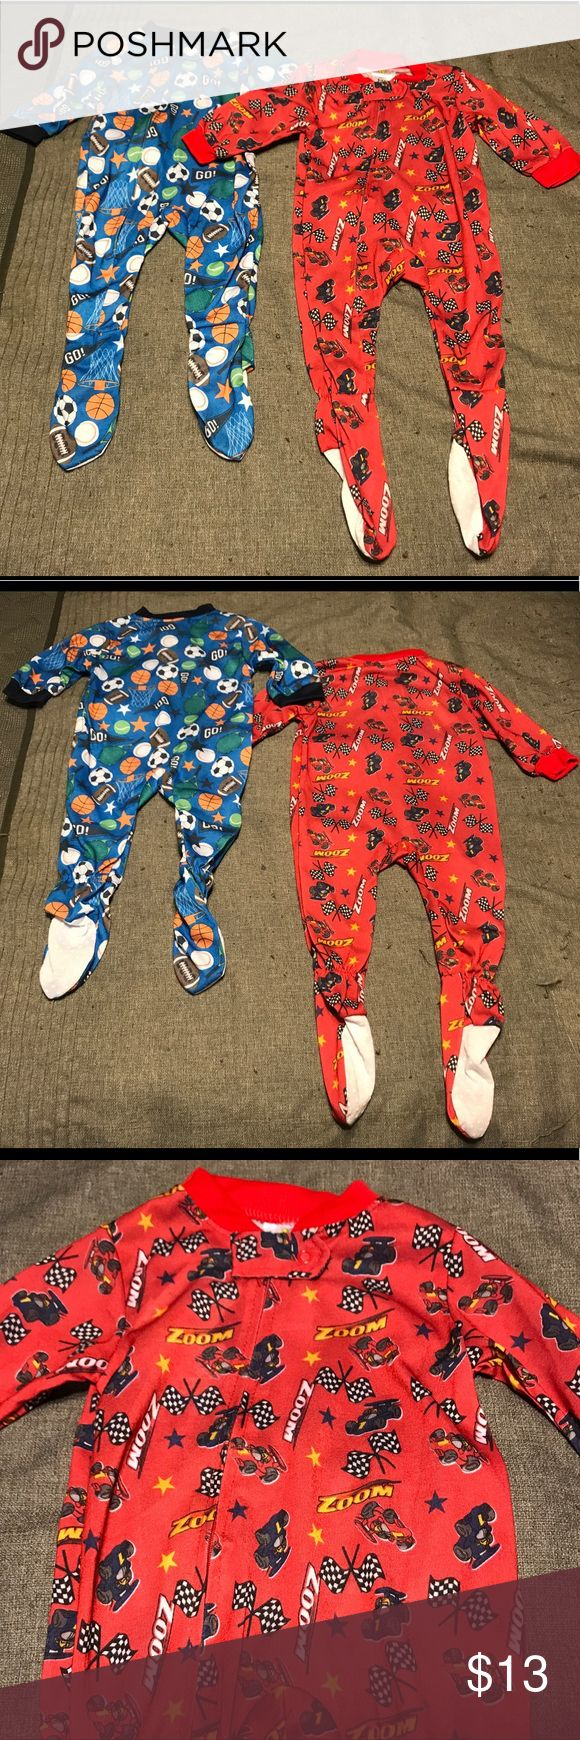 NWT🔥 Bundle of 2 Baby Boy PJs These are new with tags!! This is a bundle of baby boy one piece footie pajamas. The red pajamas have a race car theme and they zipper and the blue pajamas have a sports theme and they also zipper. These pajamas are thin material so they are light. precious creations Pajamas